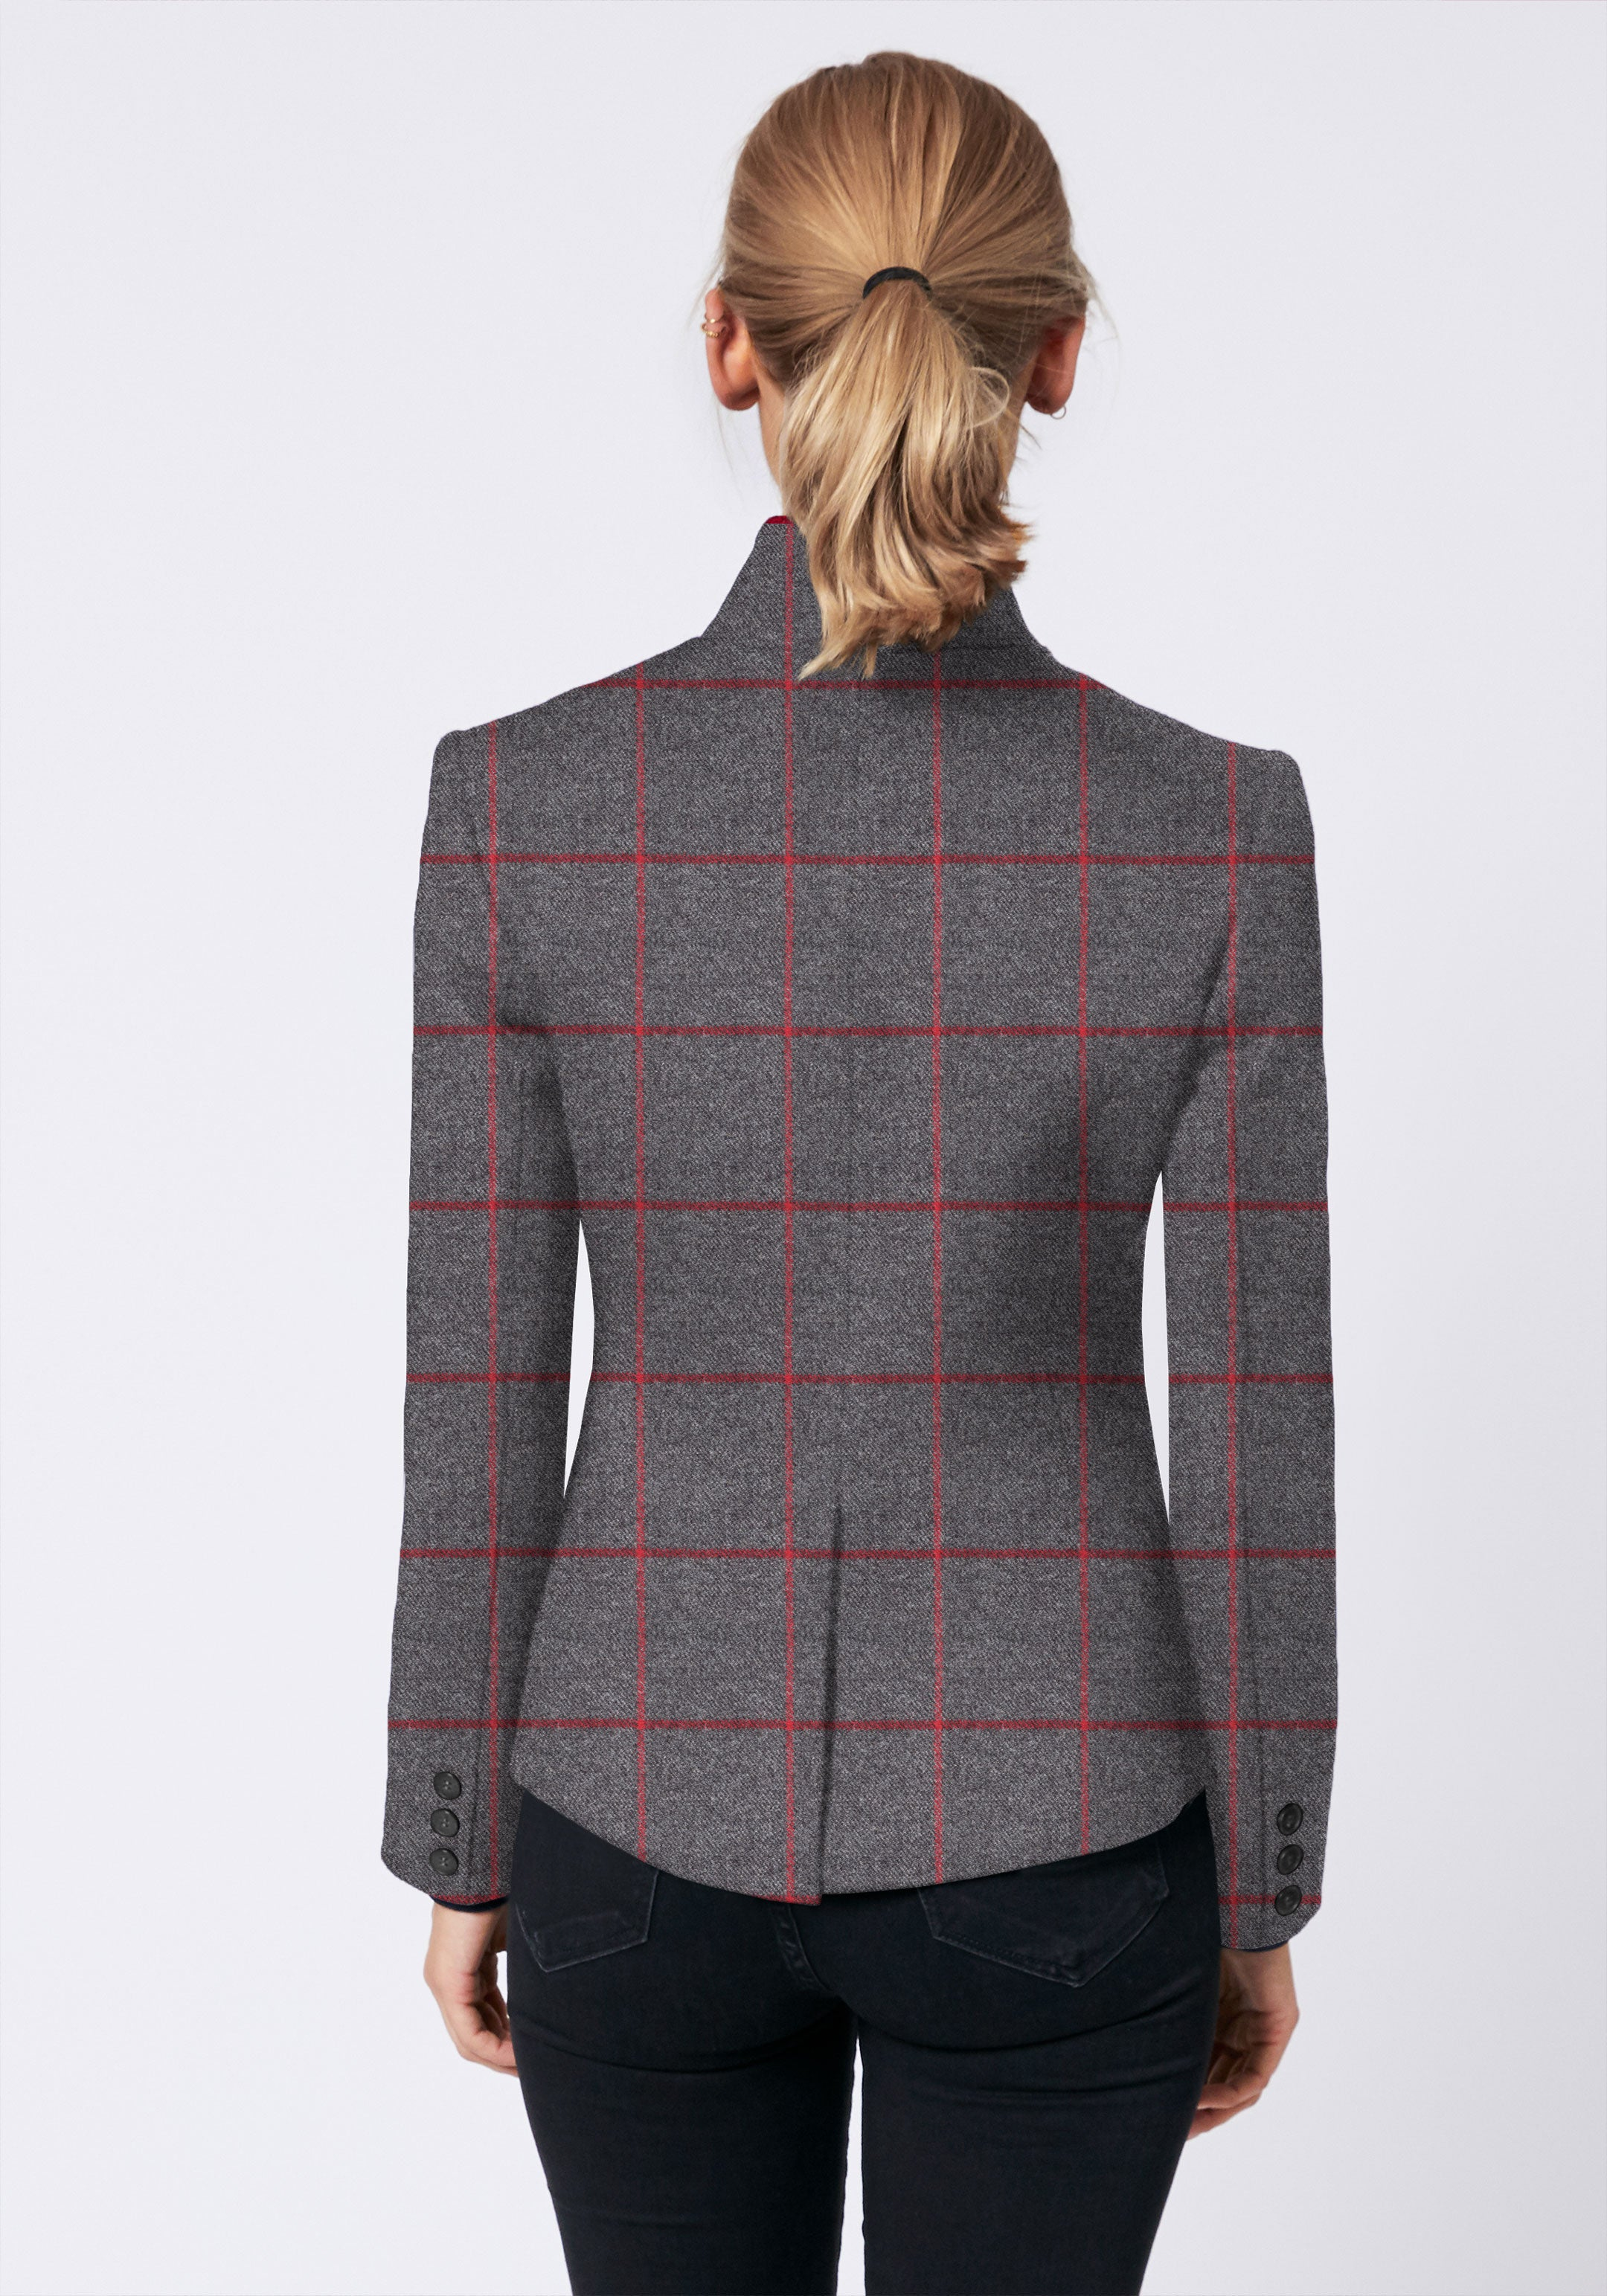 Tallulah Jacket in Grey and Red Check